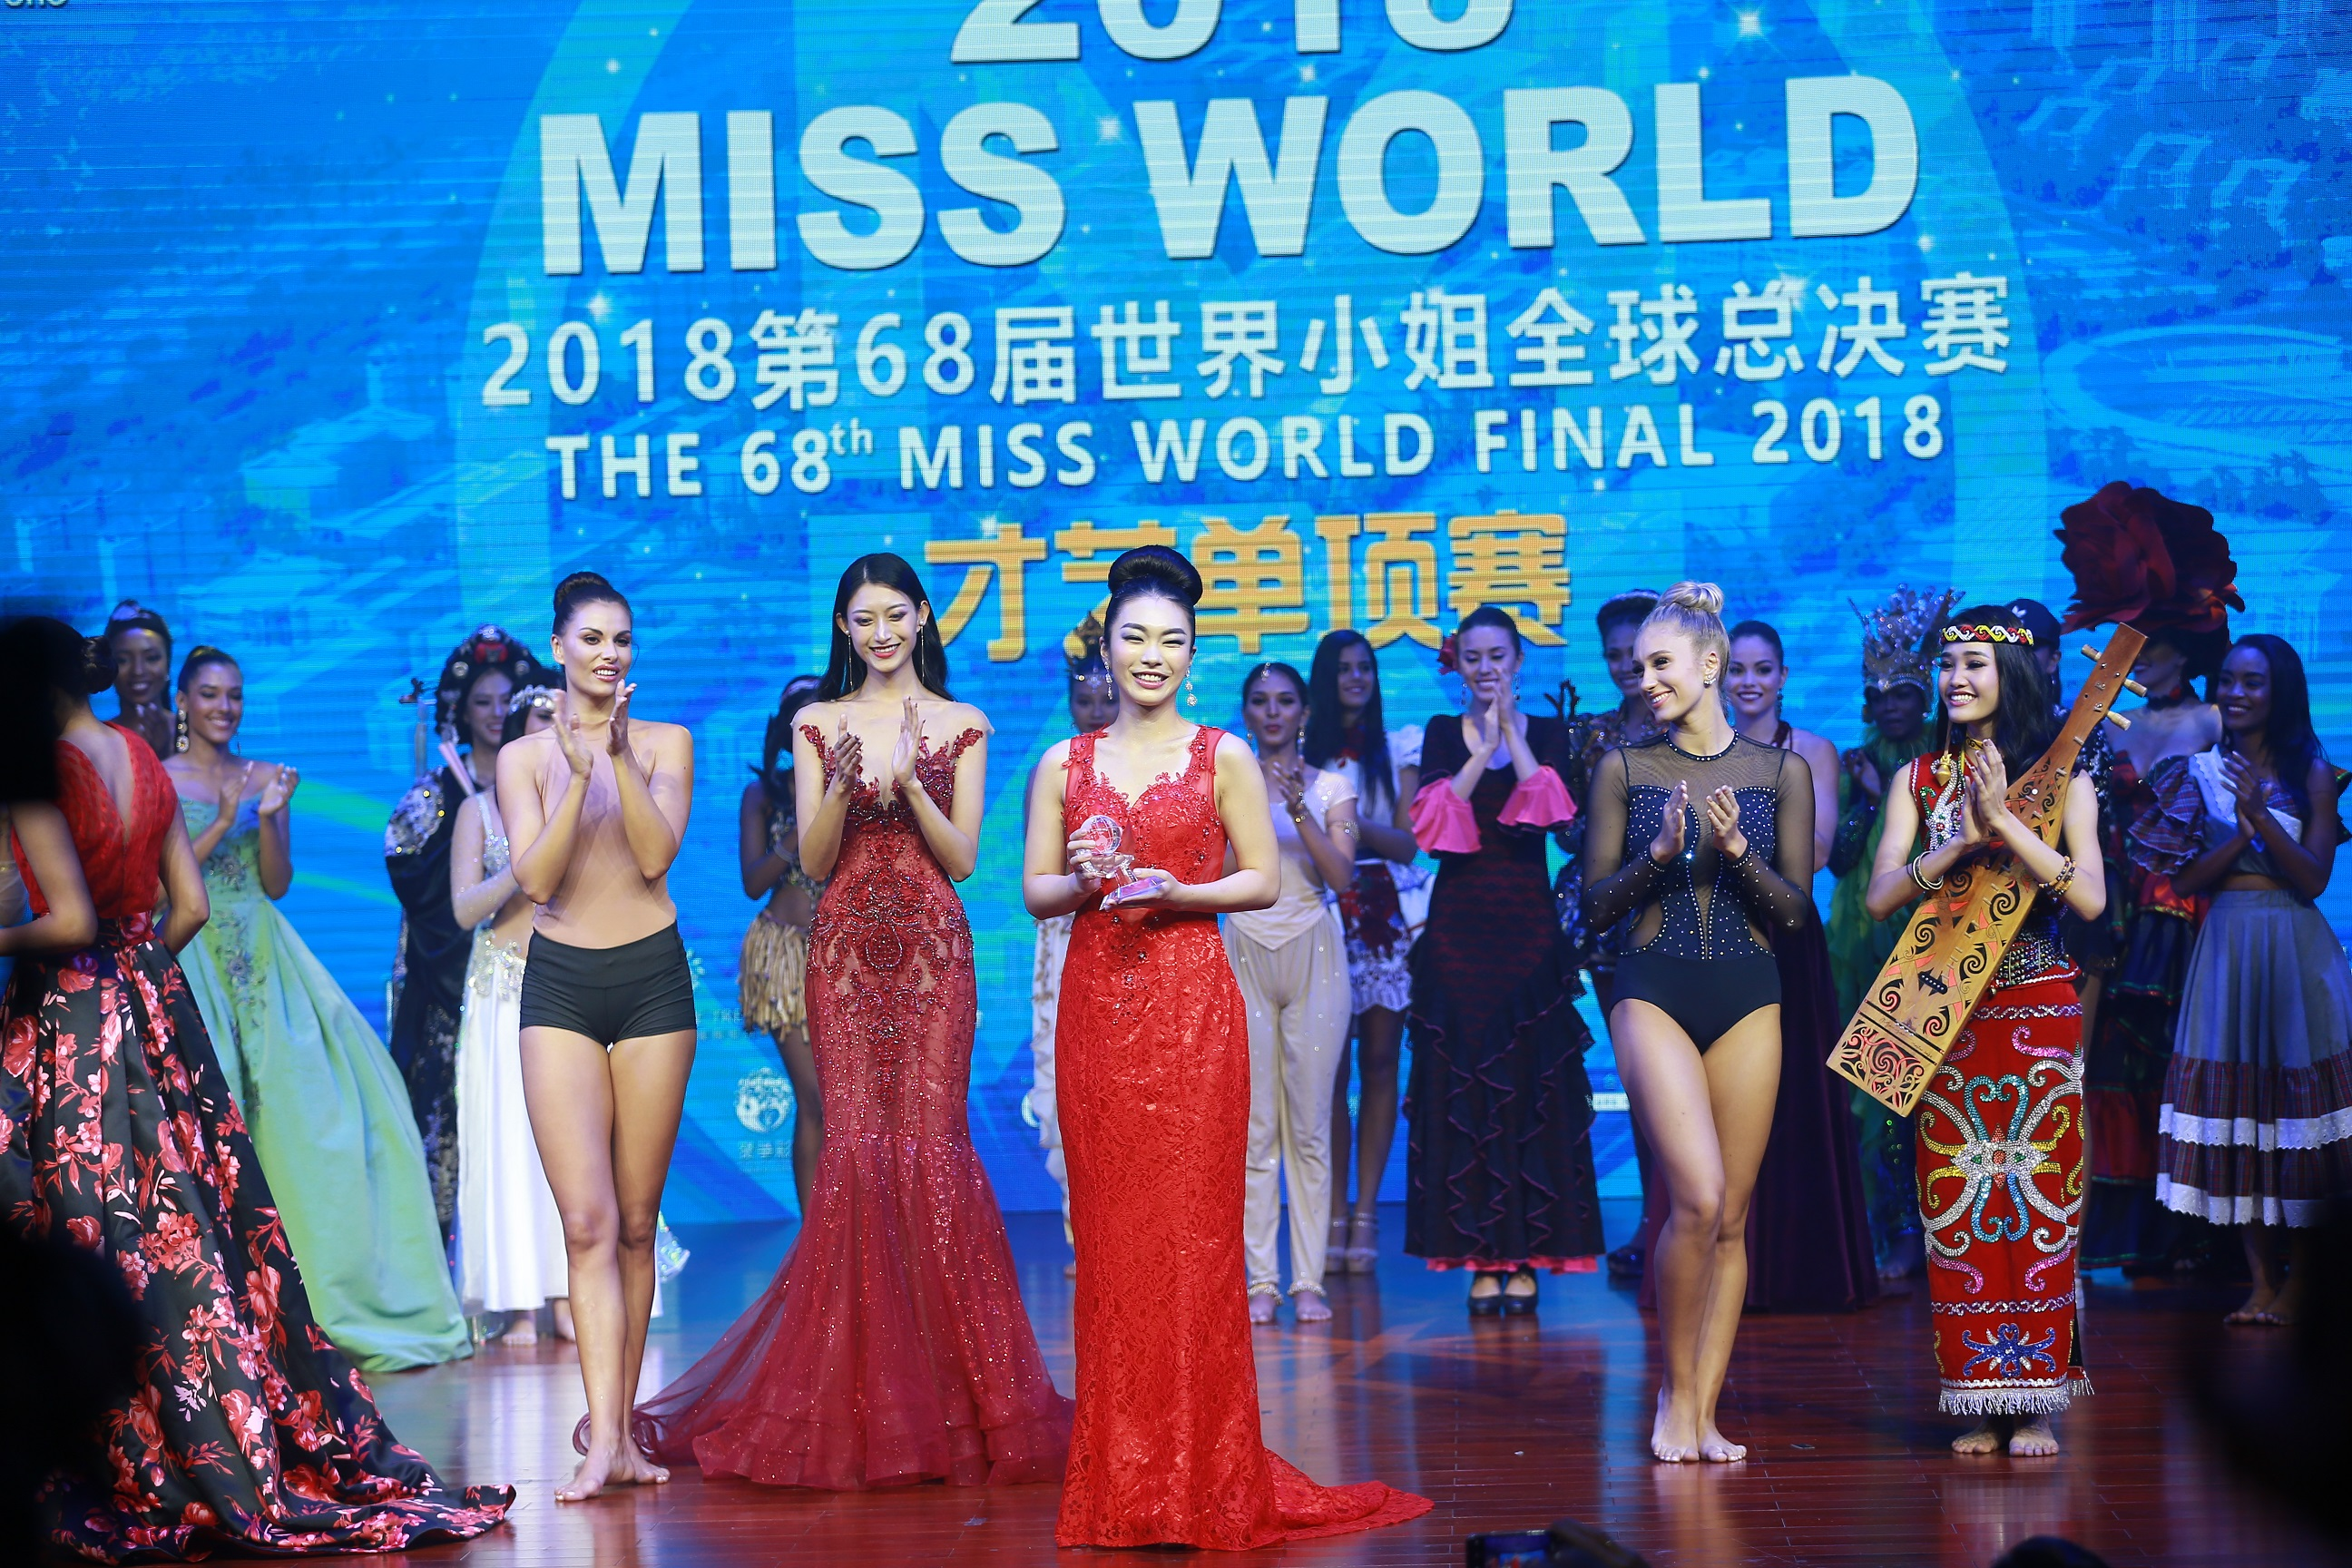 ✪✪✪ MISS WORLD 2018 - COMPLETE COVERAGE  ✪✪✪ - Page 27 JACK1841_resize